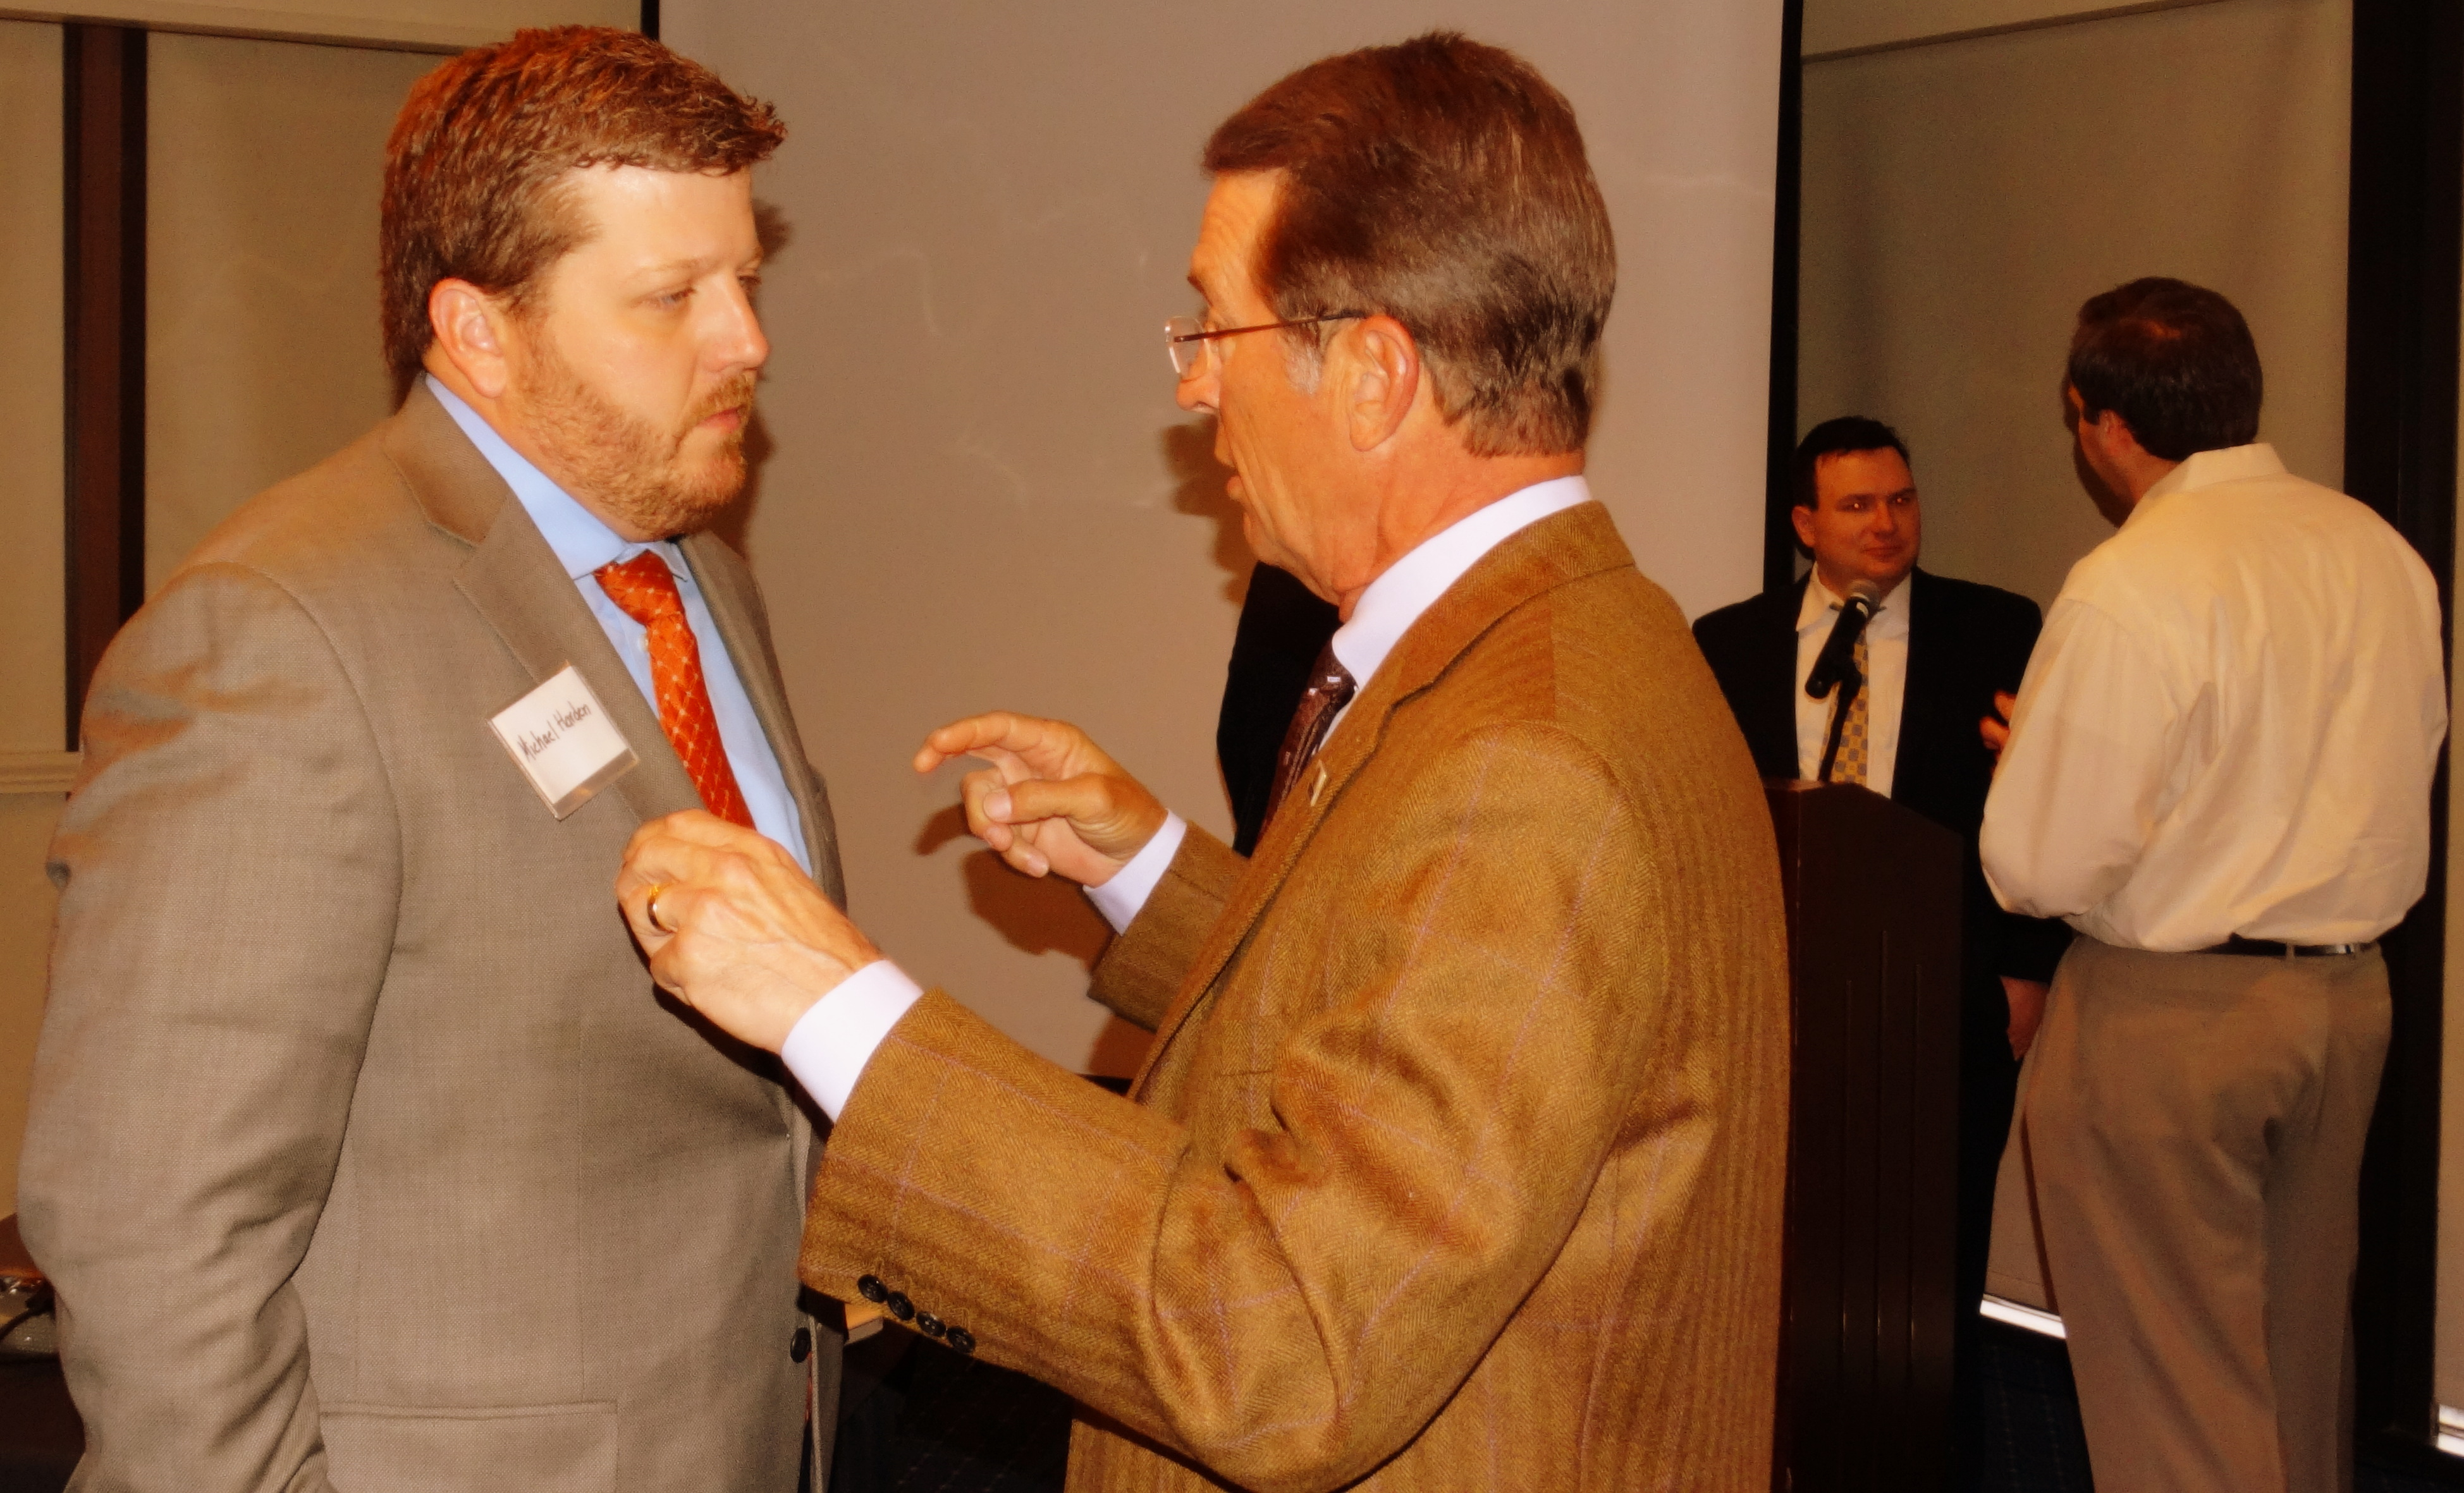 Michael Harden of Americans for Prosperity Georgia (left) chats with Jim Stephenson of Yancey Bros; behind them, Reason Foundation transportation analyst Baruch Feigenbaum chats with an attendee at the Foundation's February 18 Leadership Breakfast. Find more photographs of the event at www.facebook.com/georgiapolicy.